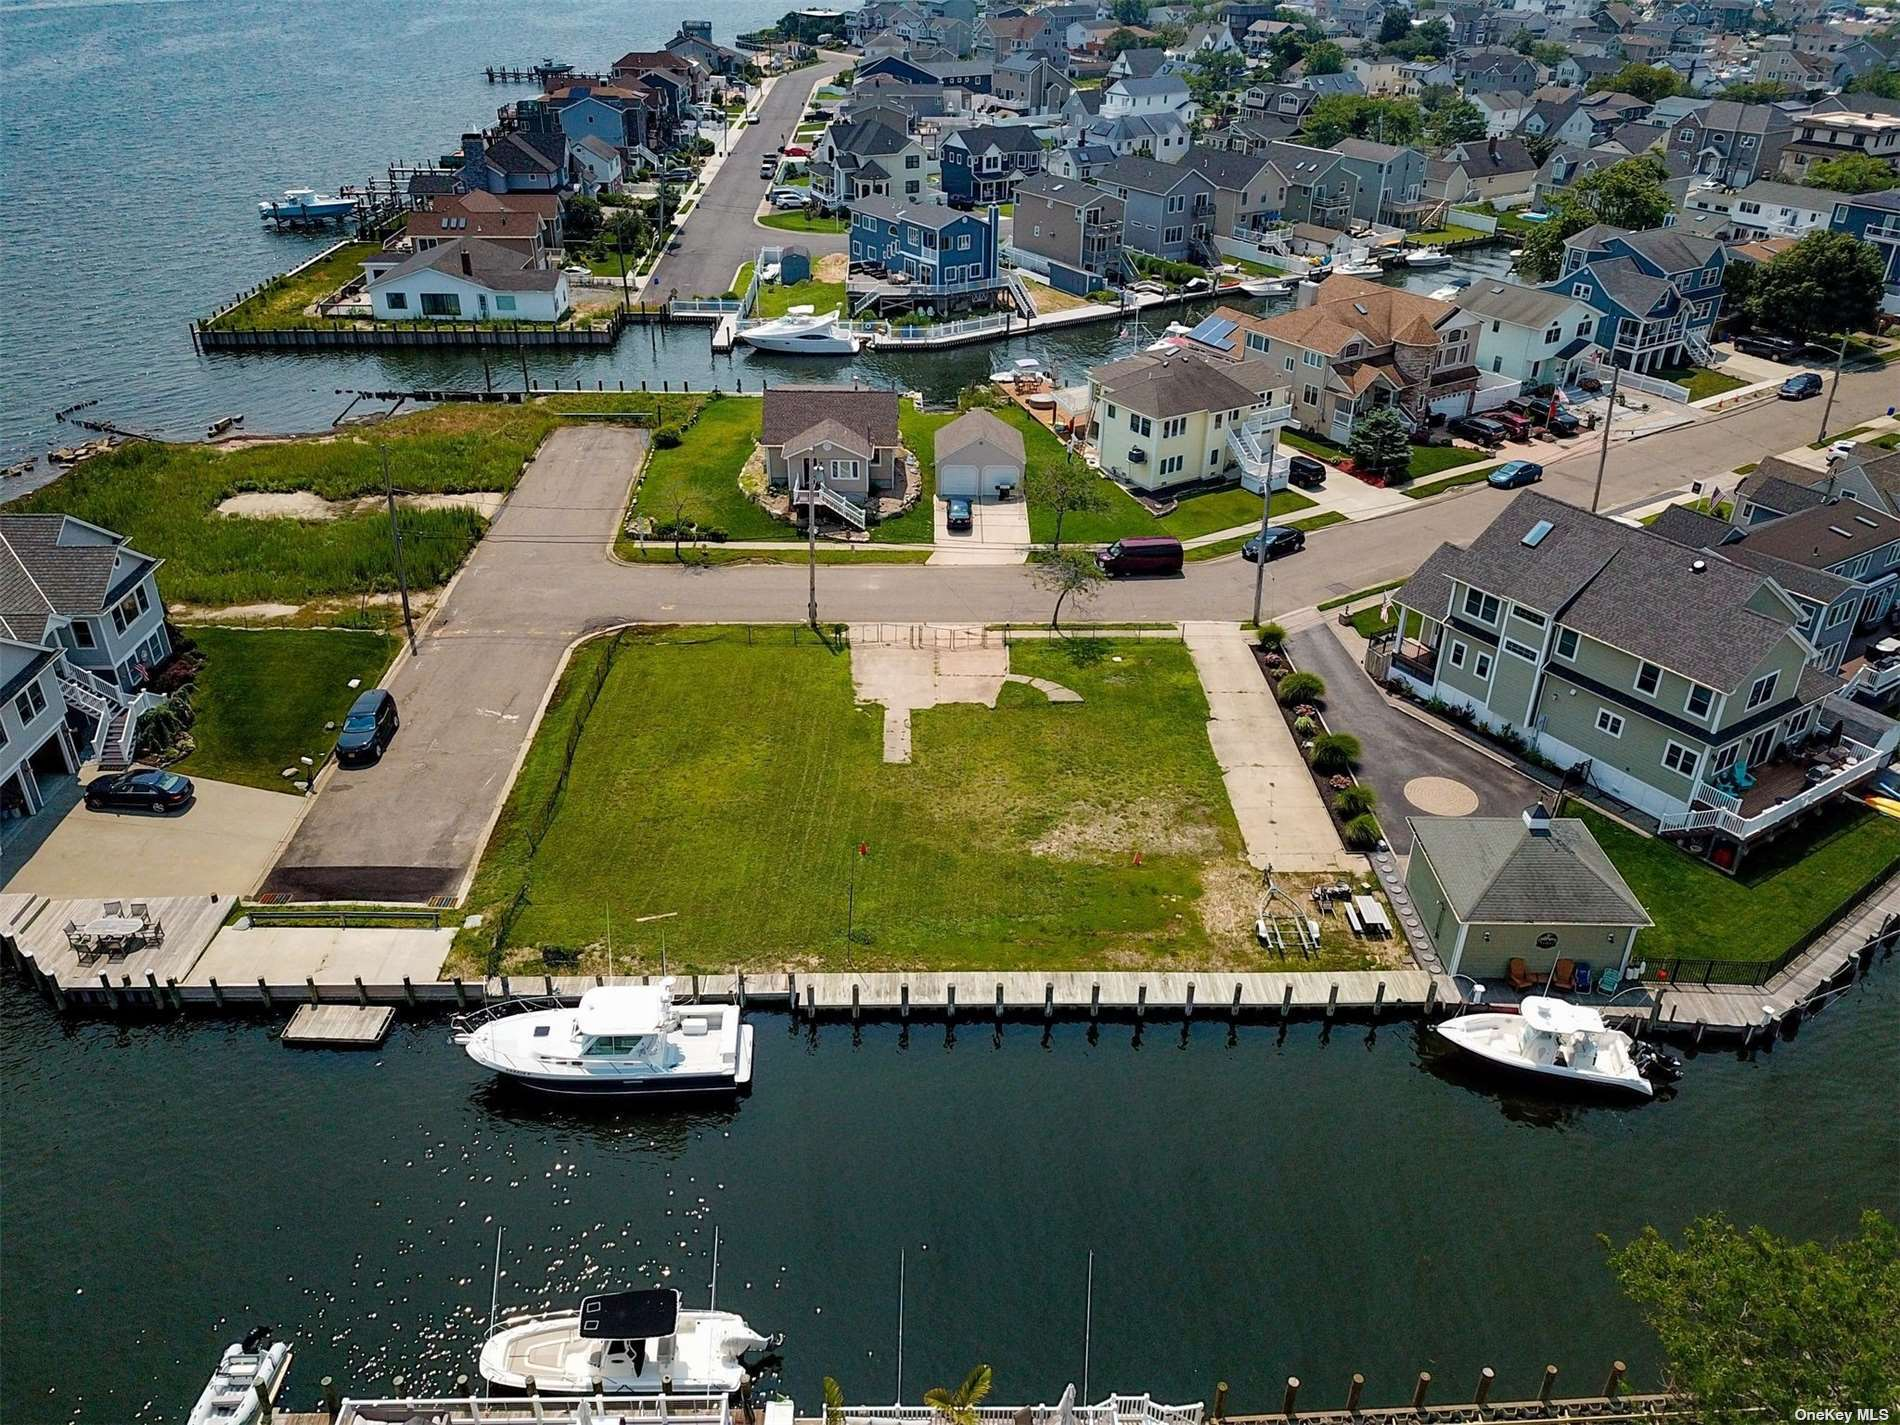 Wonderful Opportunity to Build Your Own 3,000 SF House or Be an Investor! 2 Lots Being Sold as One for a Lot Size of 120' x 100'. Situated on a Deep and Wide Canal with Gorgeous Unobstructed Views.